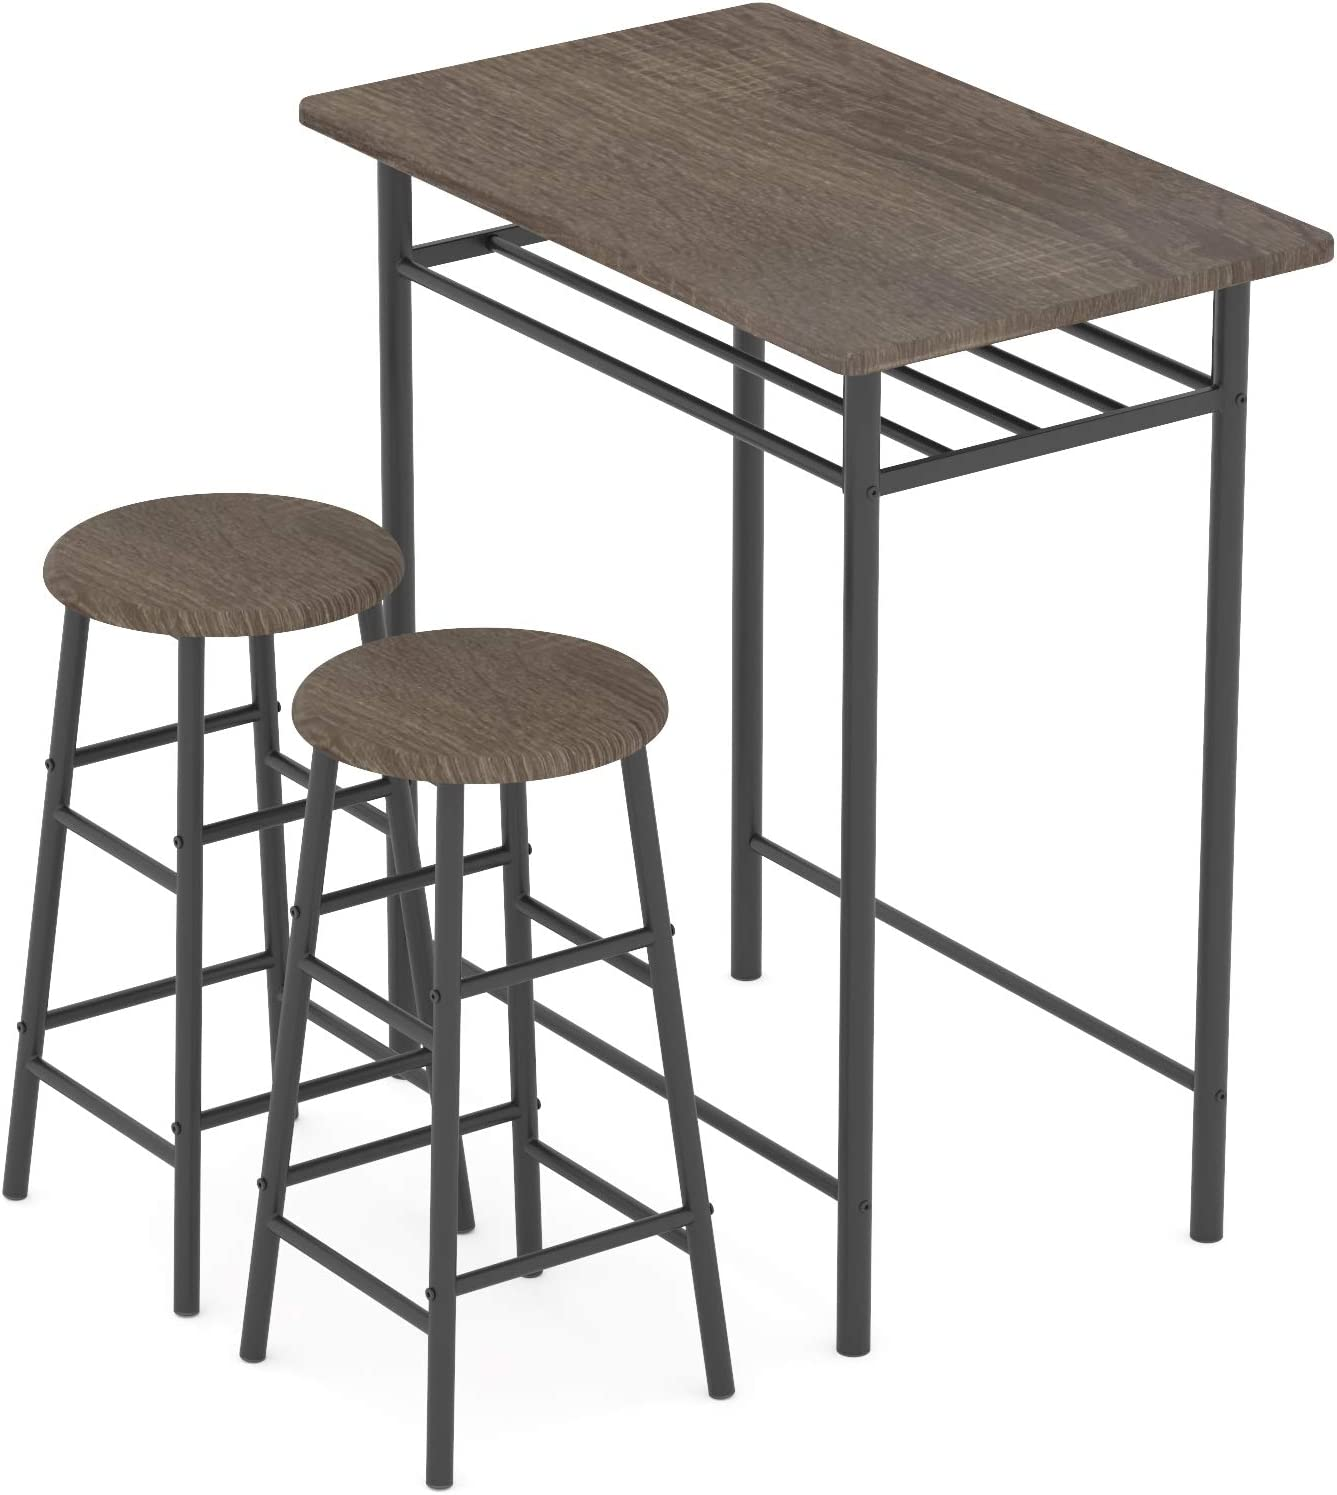 WeeHom 3 Pieces Bar Table Set, Modern Pub Table and Chairs Dining Set, Kitchen Counter Height Dining Table Set with 2 Bar Stools, Built in Storage Layer, Easy Assemble